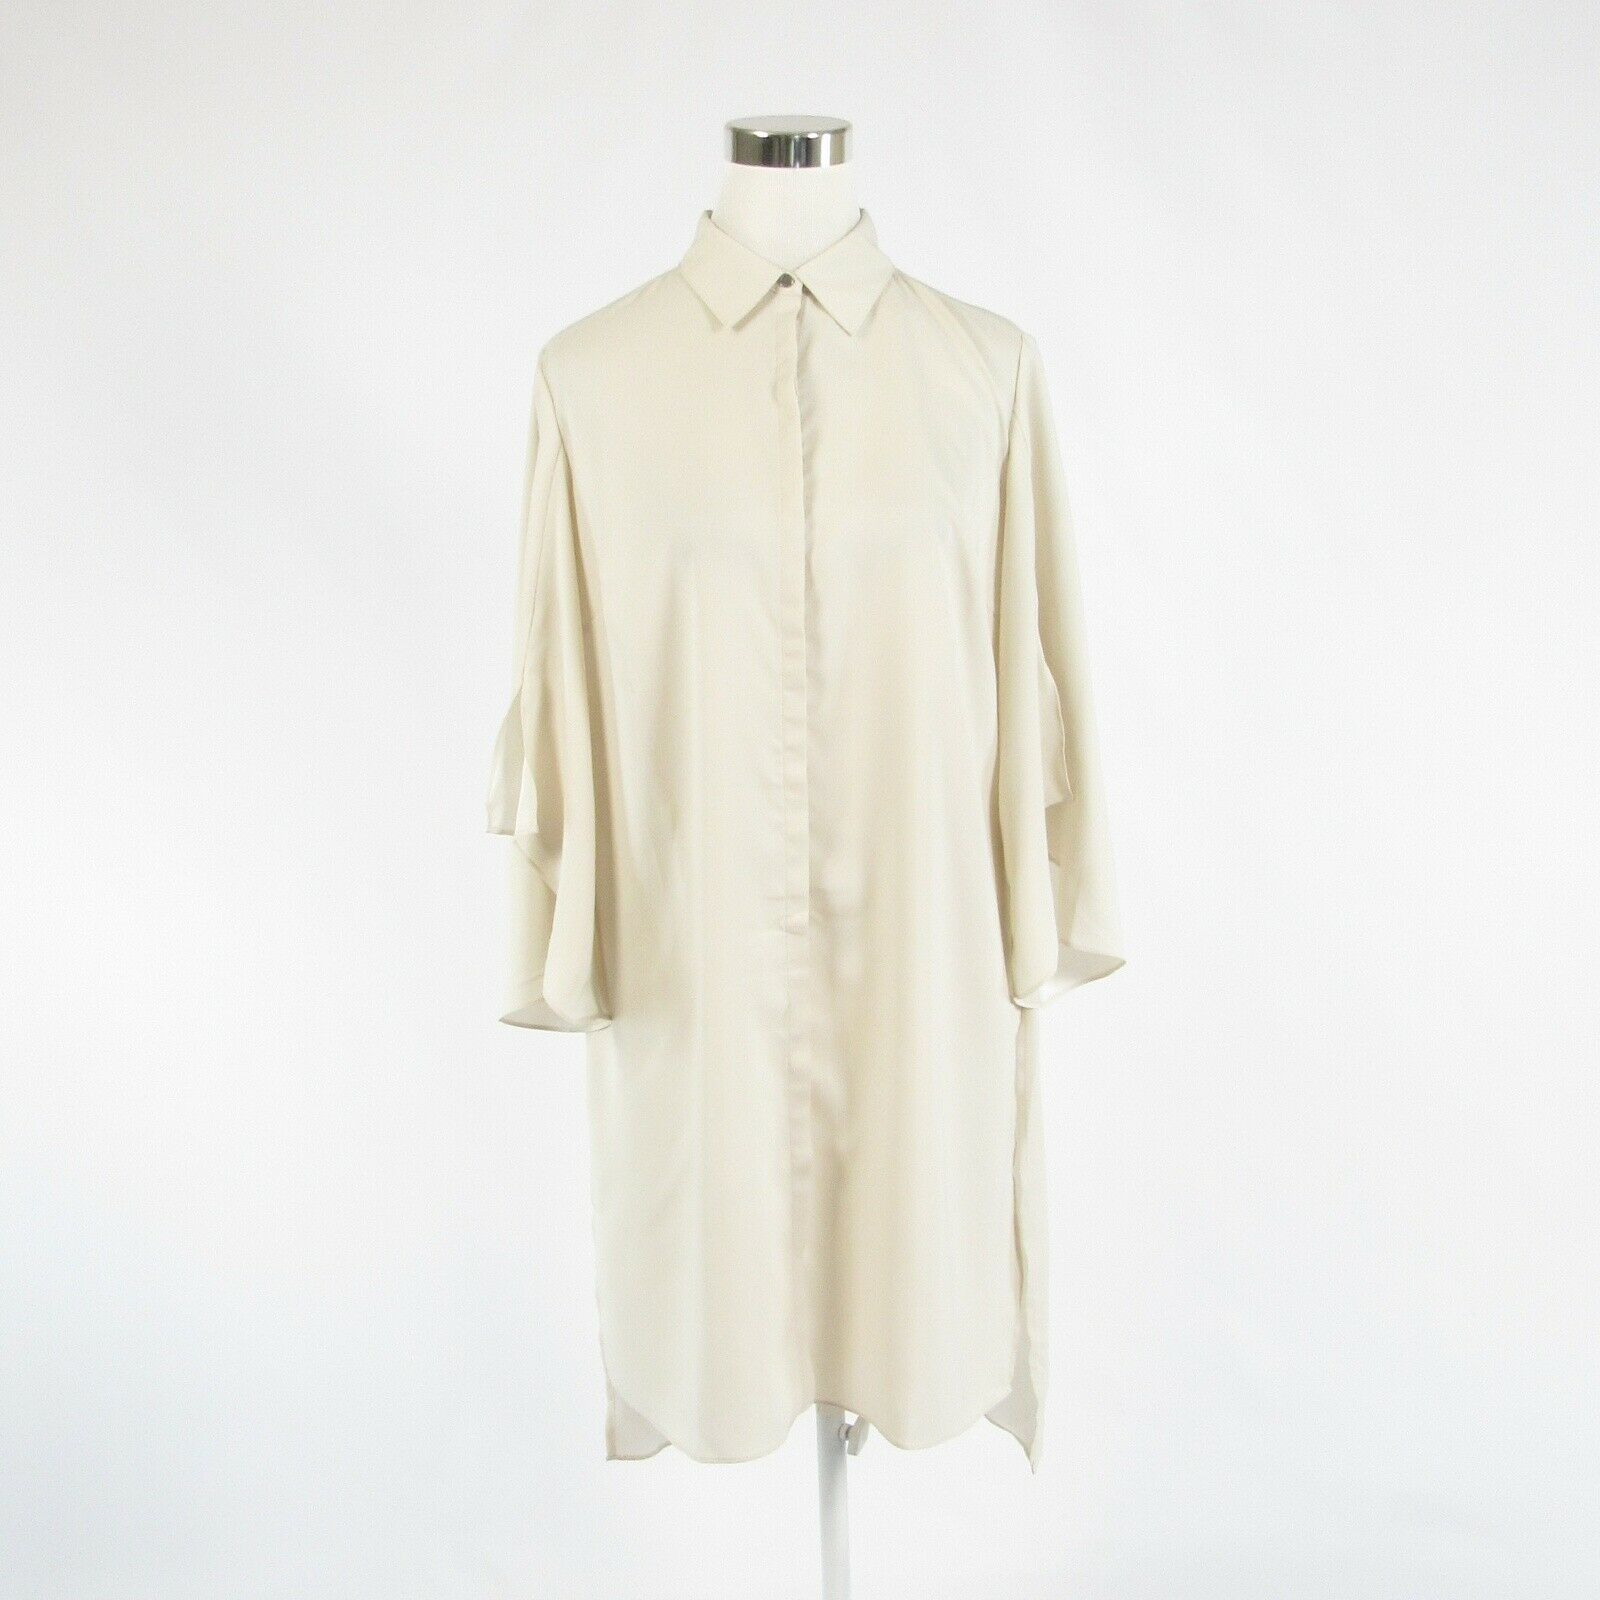 Primary image for Light beige H BY HALSTON bell sleeve button down blouse S NWOT